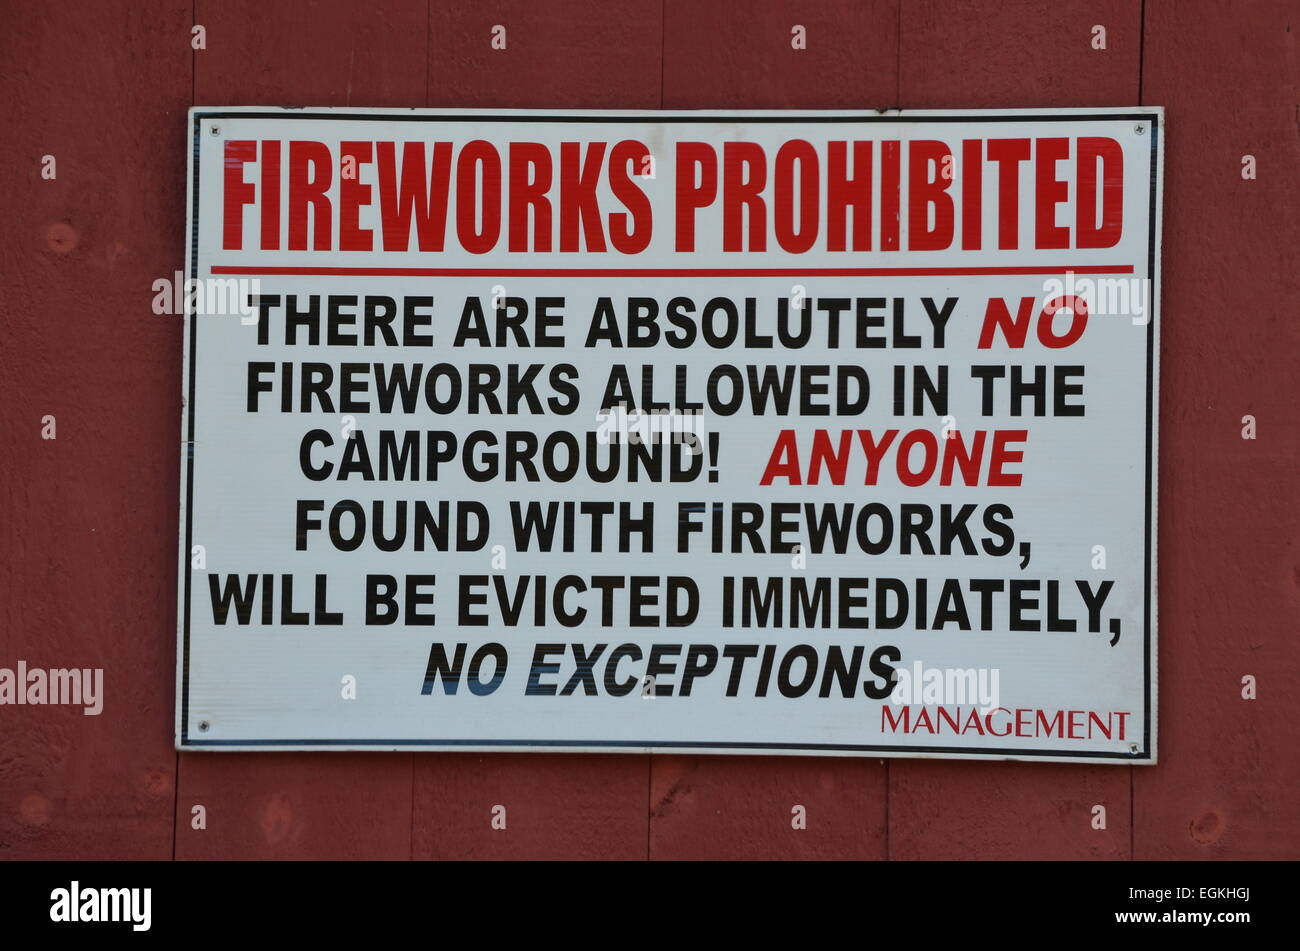 Fire works prohibited sign - Stock Image